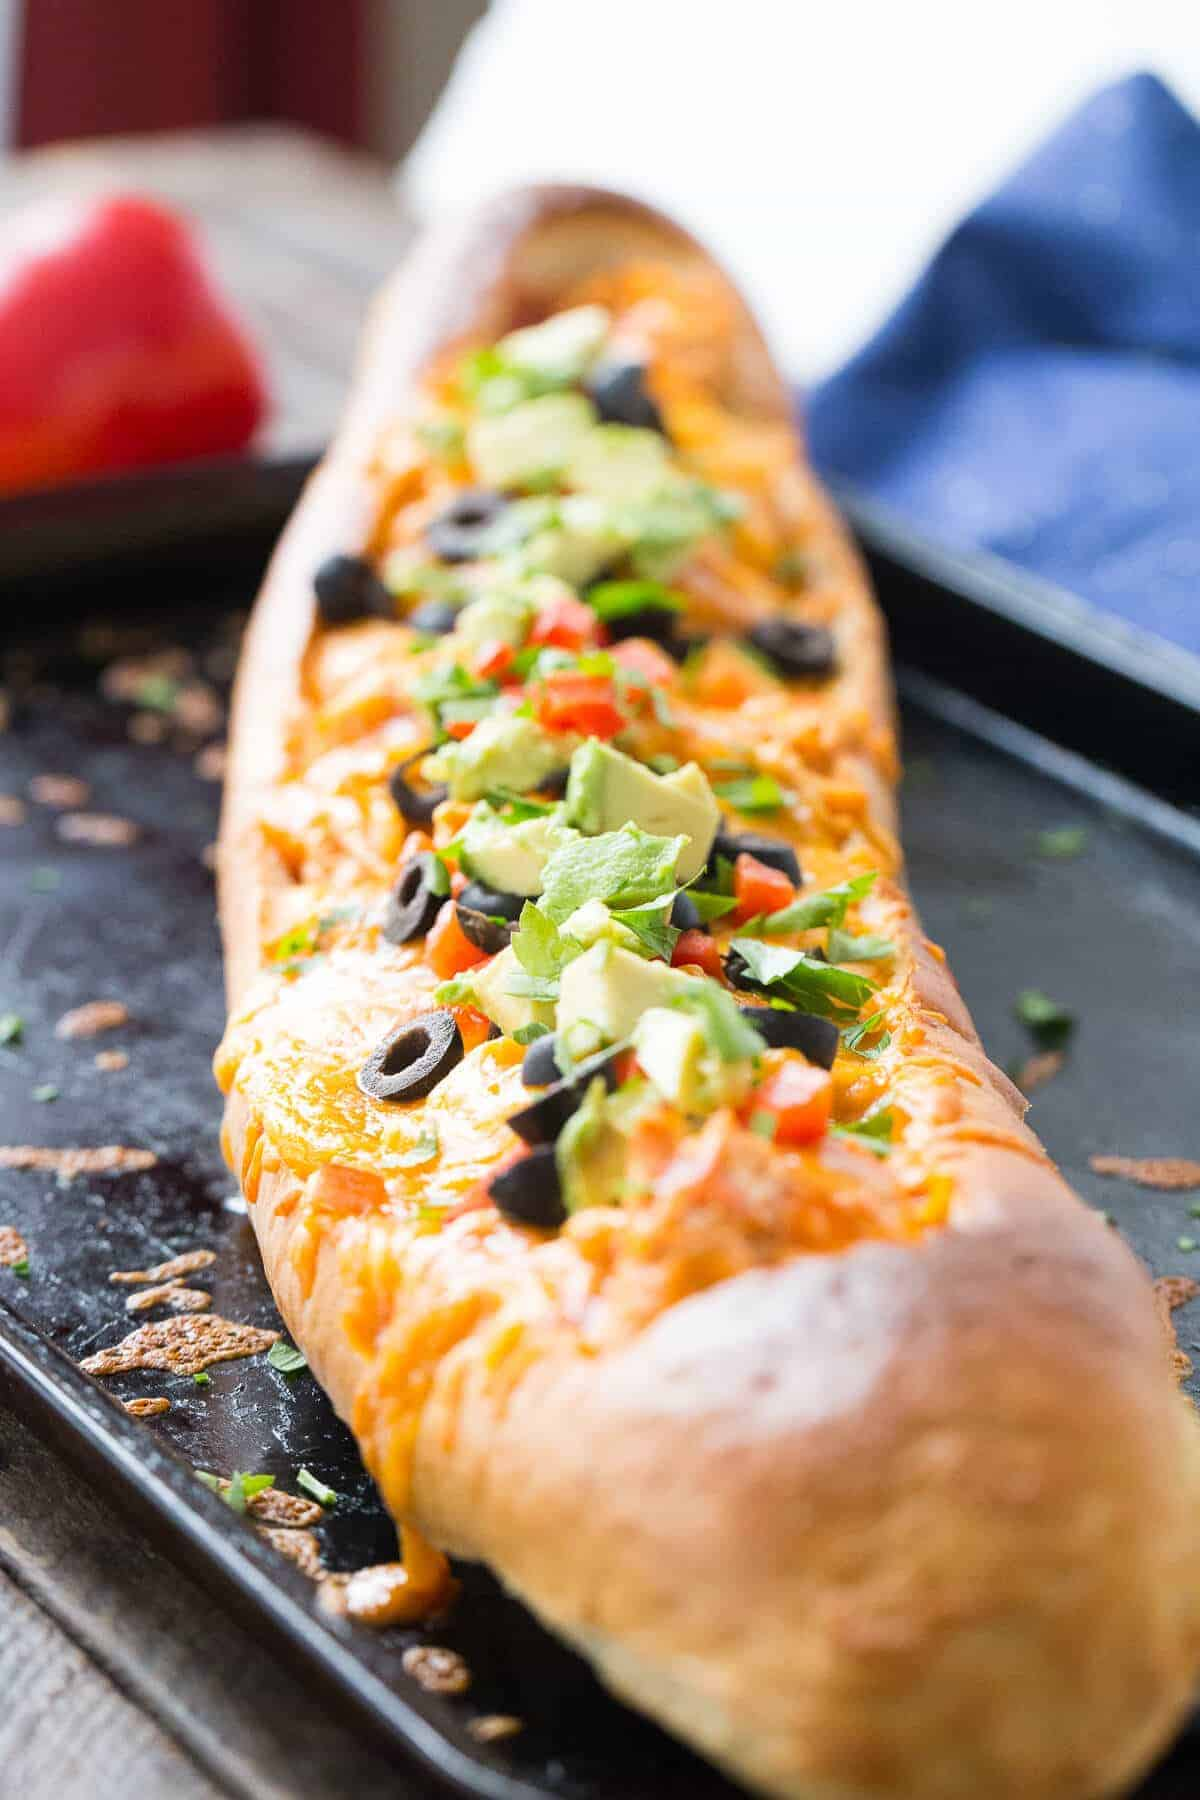 This chicken enchilada bread makes dinner simple! Chicken and sauce are stuffed inside French bread and baked! You decide on the toppings!